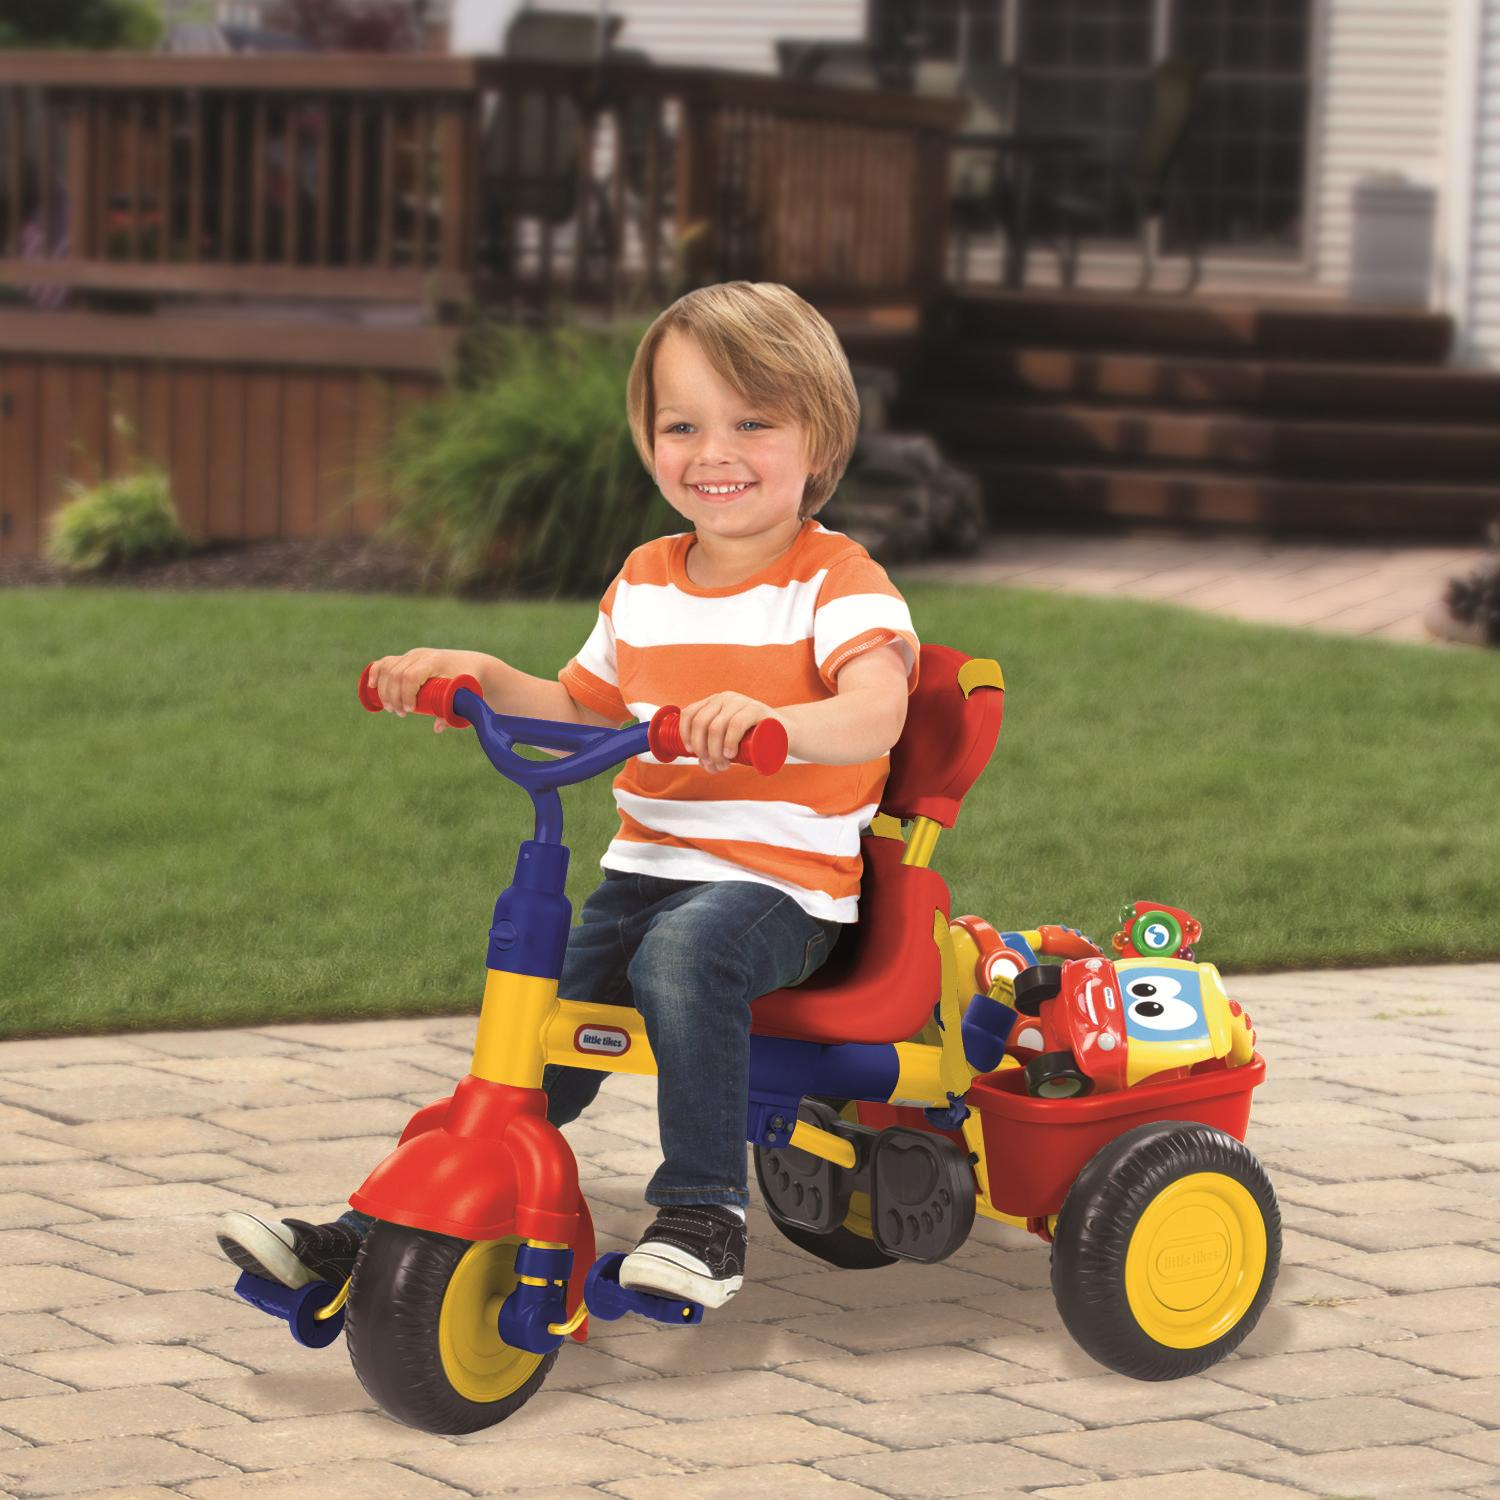 Little Tikes 3-in-1 Trike